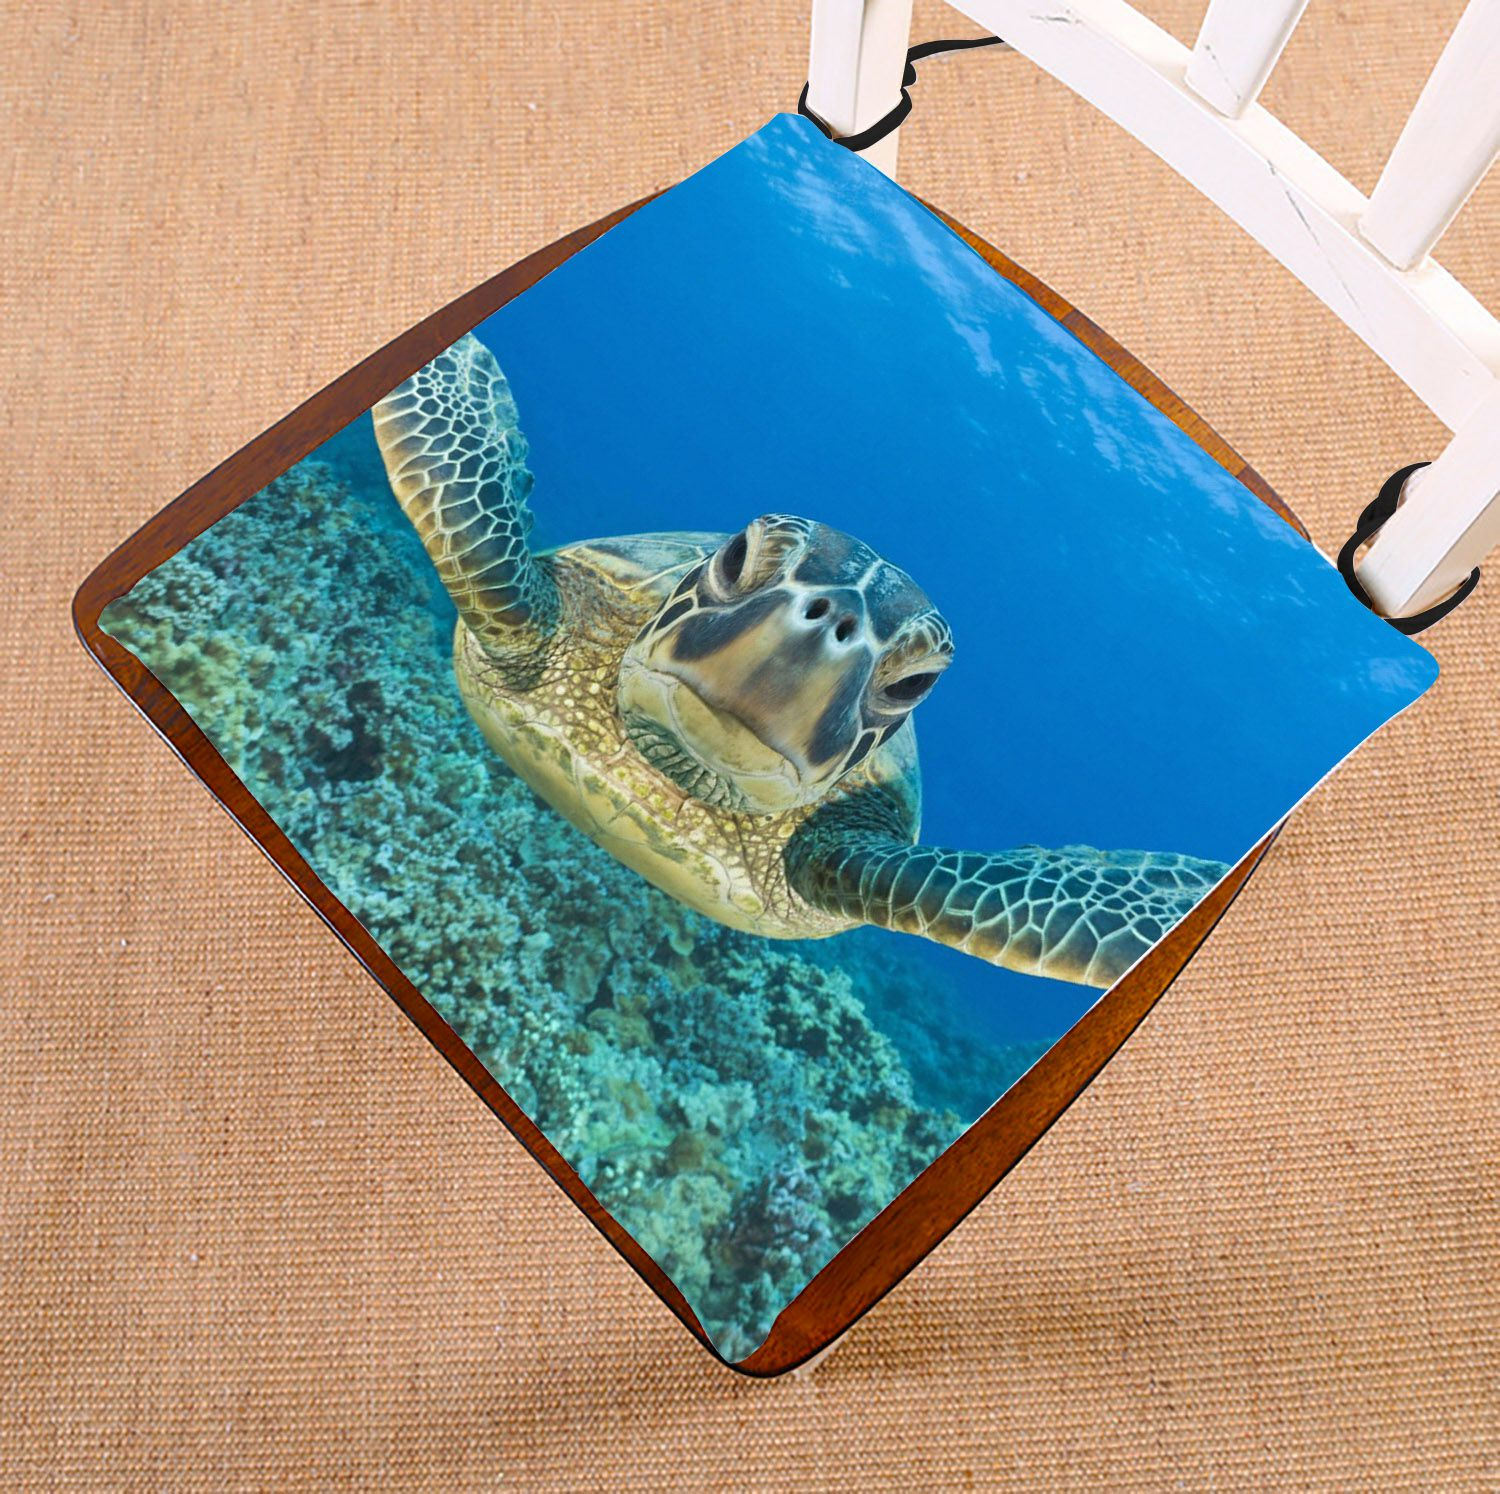 ZKGK Sea Turtle Painting Seat Pad Seat Cushion Chair Cushion Floor Cushion Two Sides 16x16 Inches